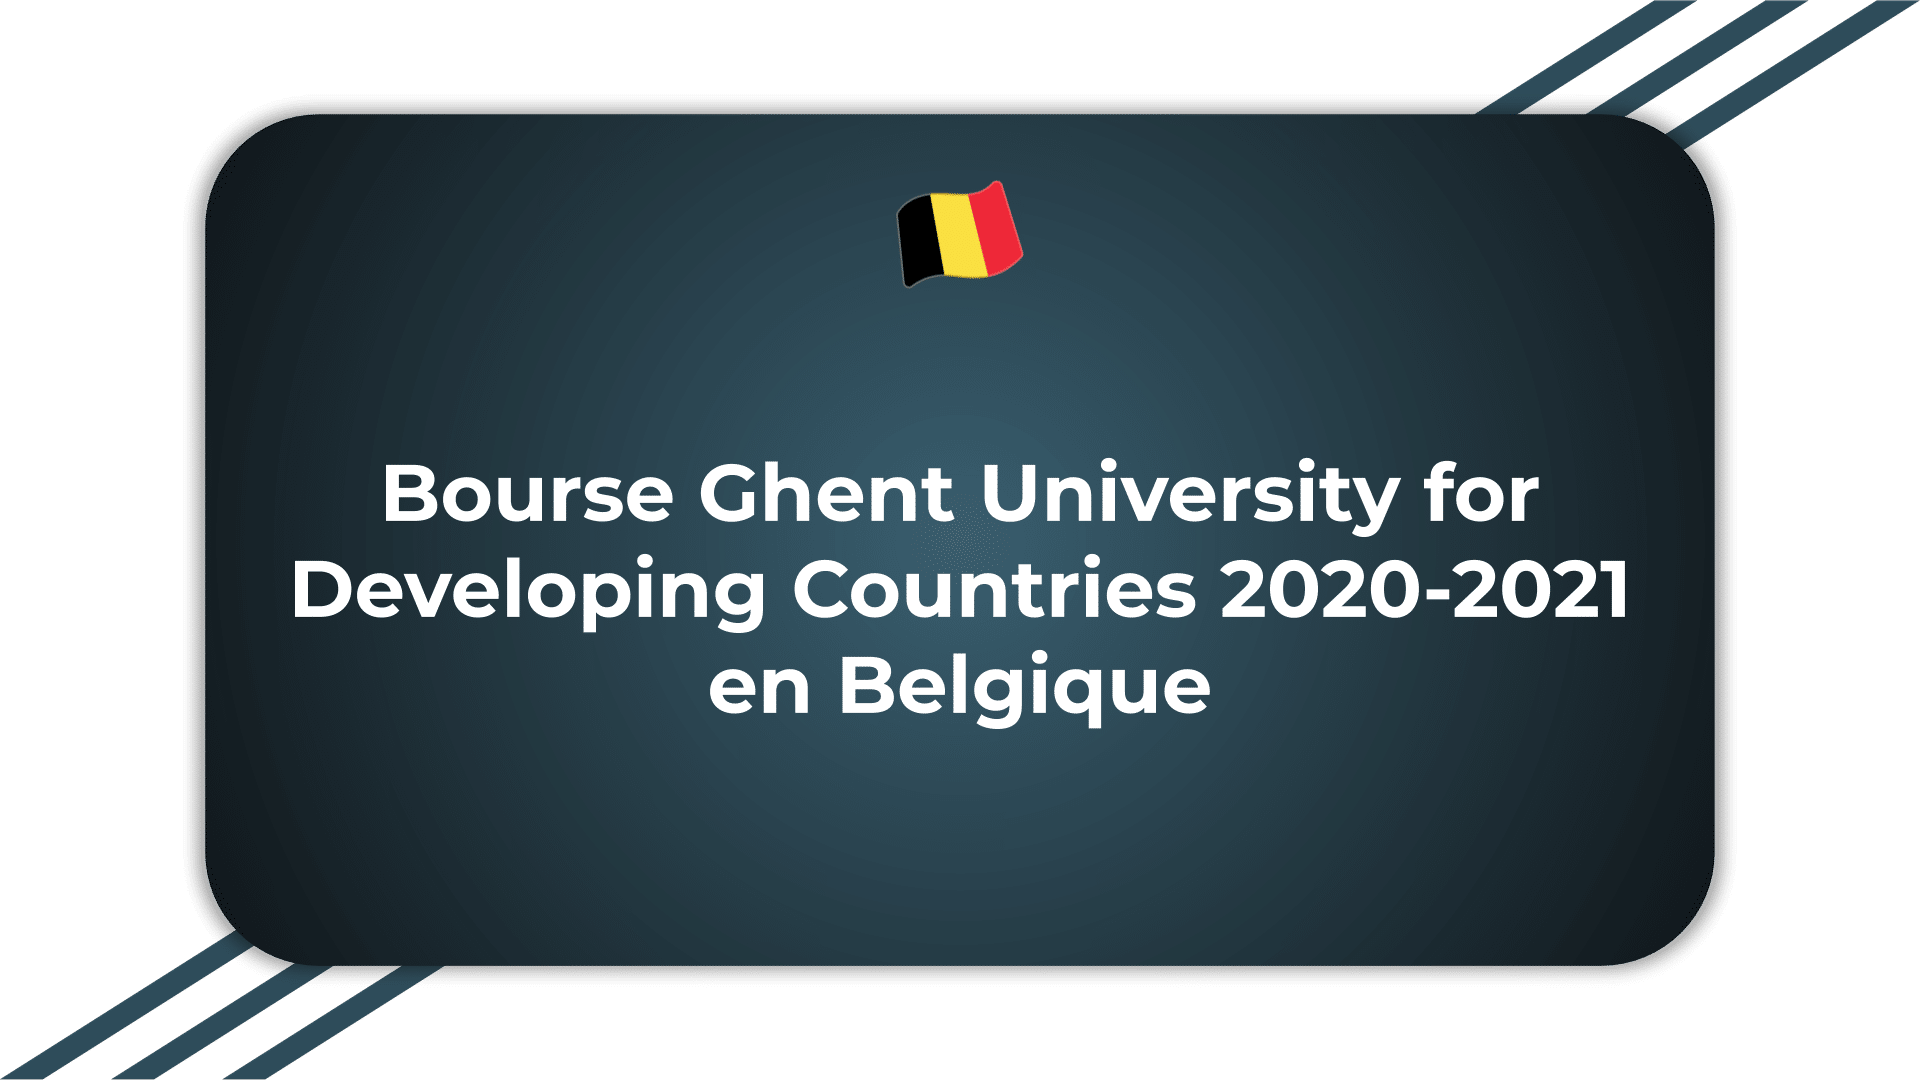 Bourse Ghent University for Developing Countries